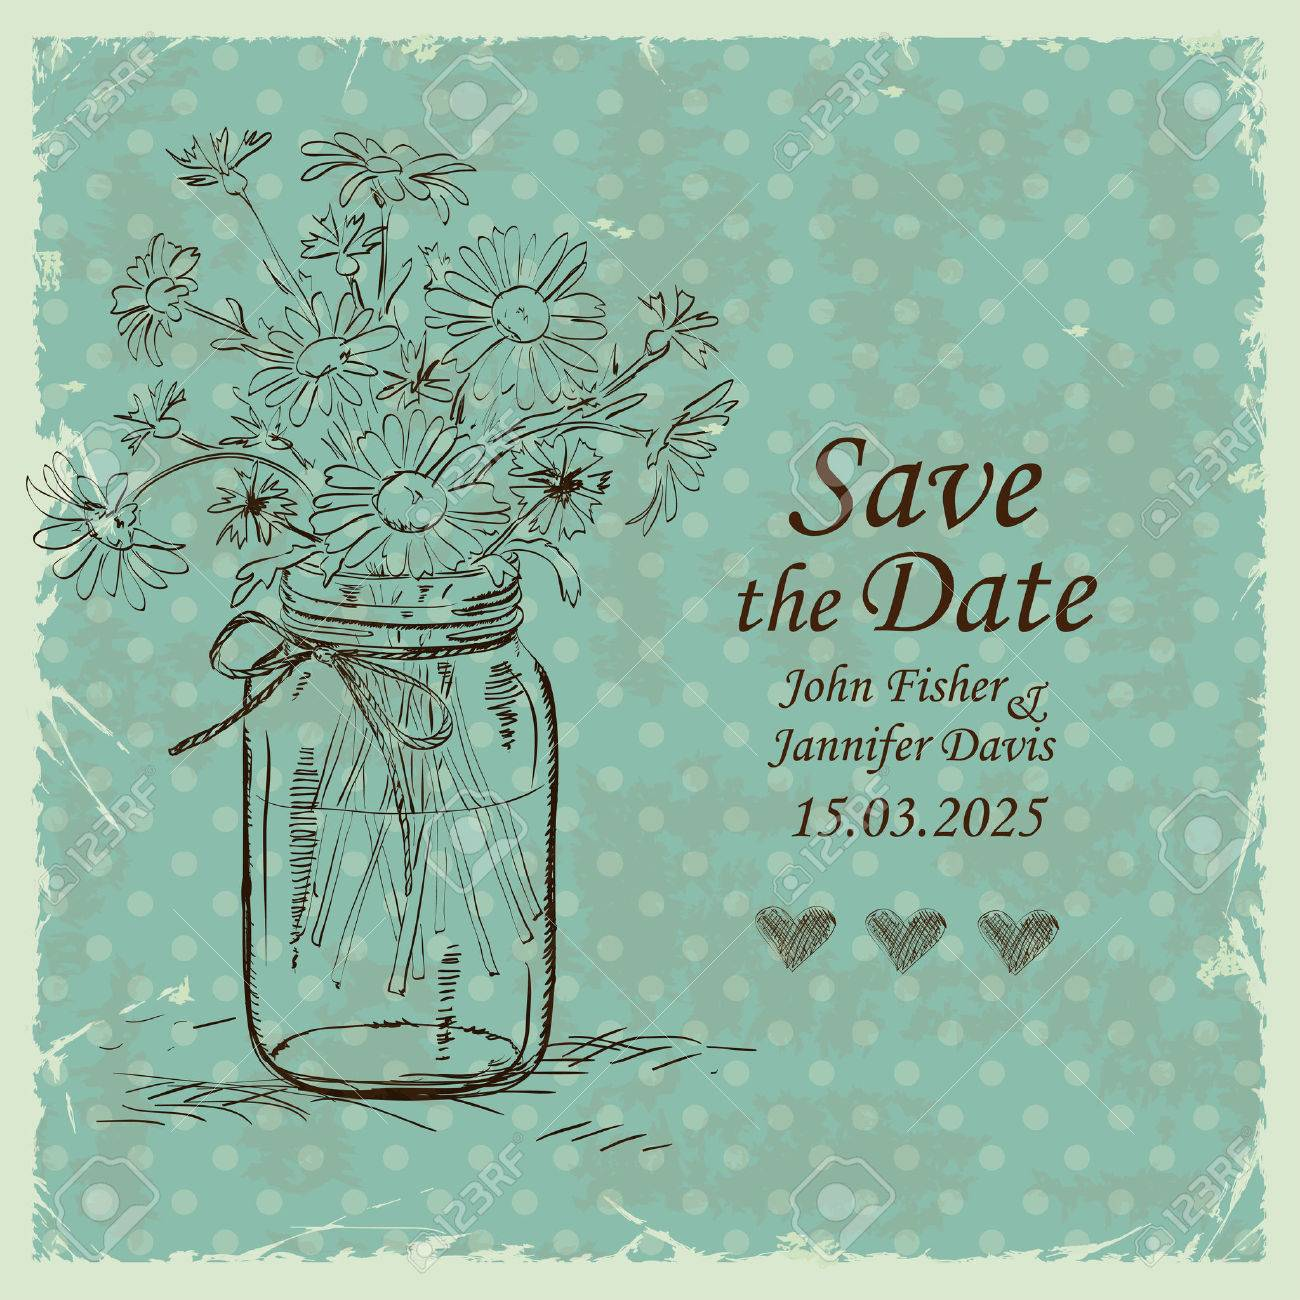 Retro Wedding Invitation With Mason Jar And Camomile Flowers ...